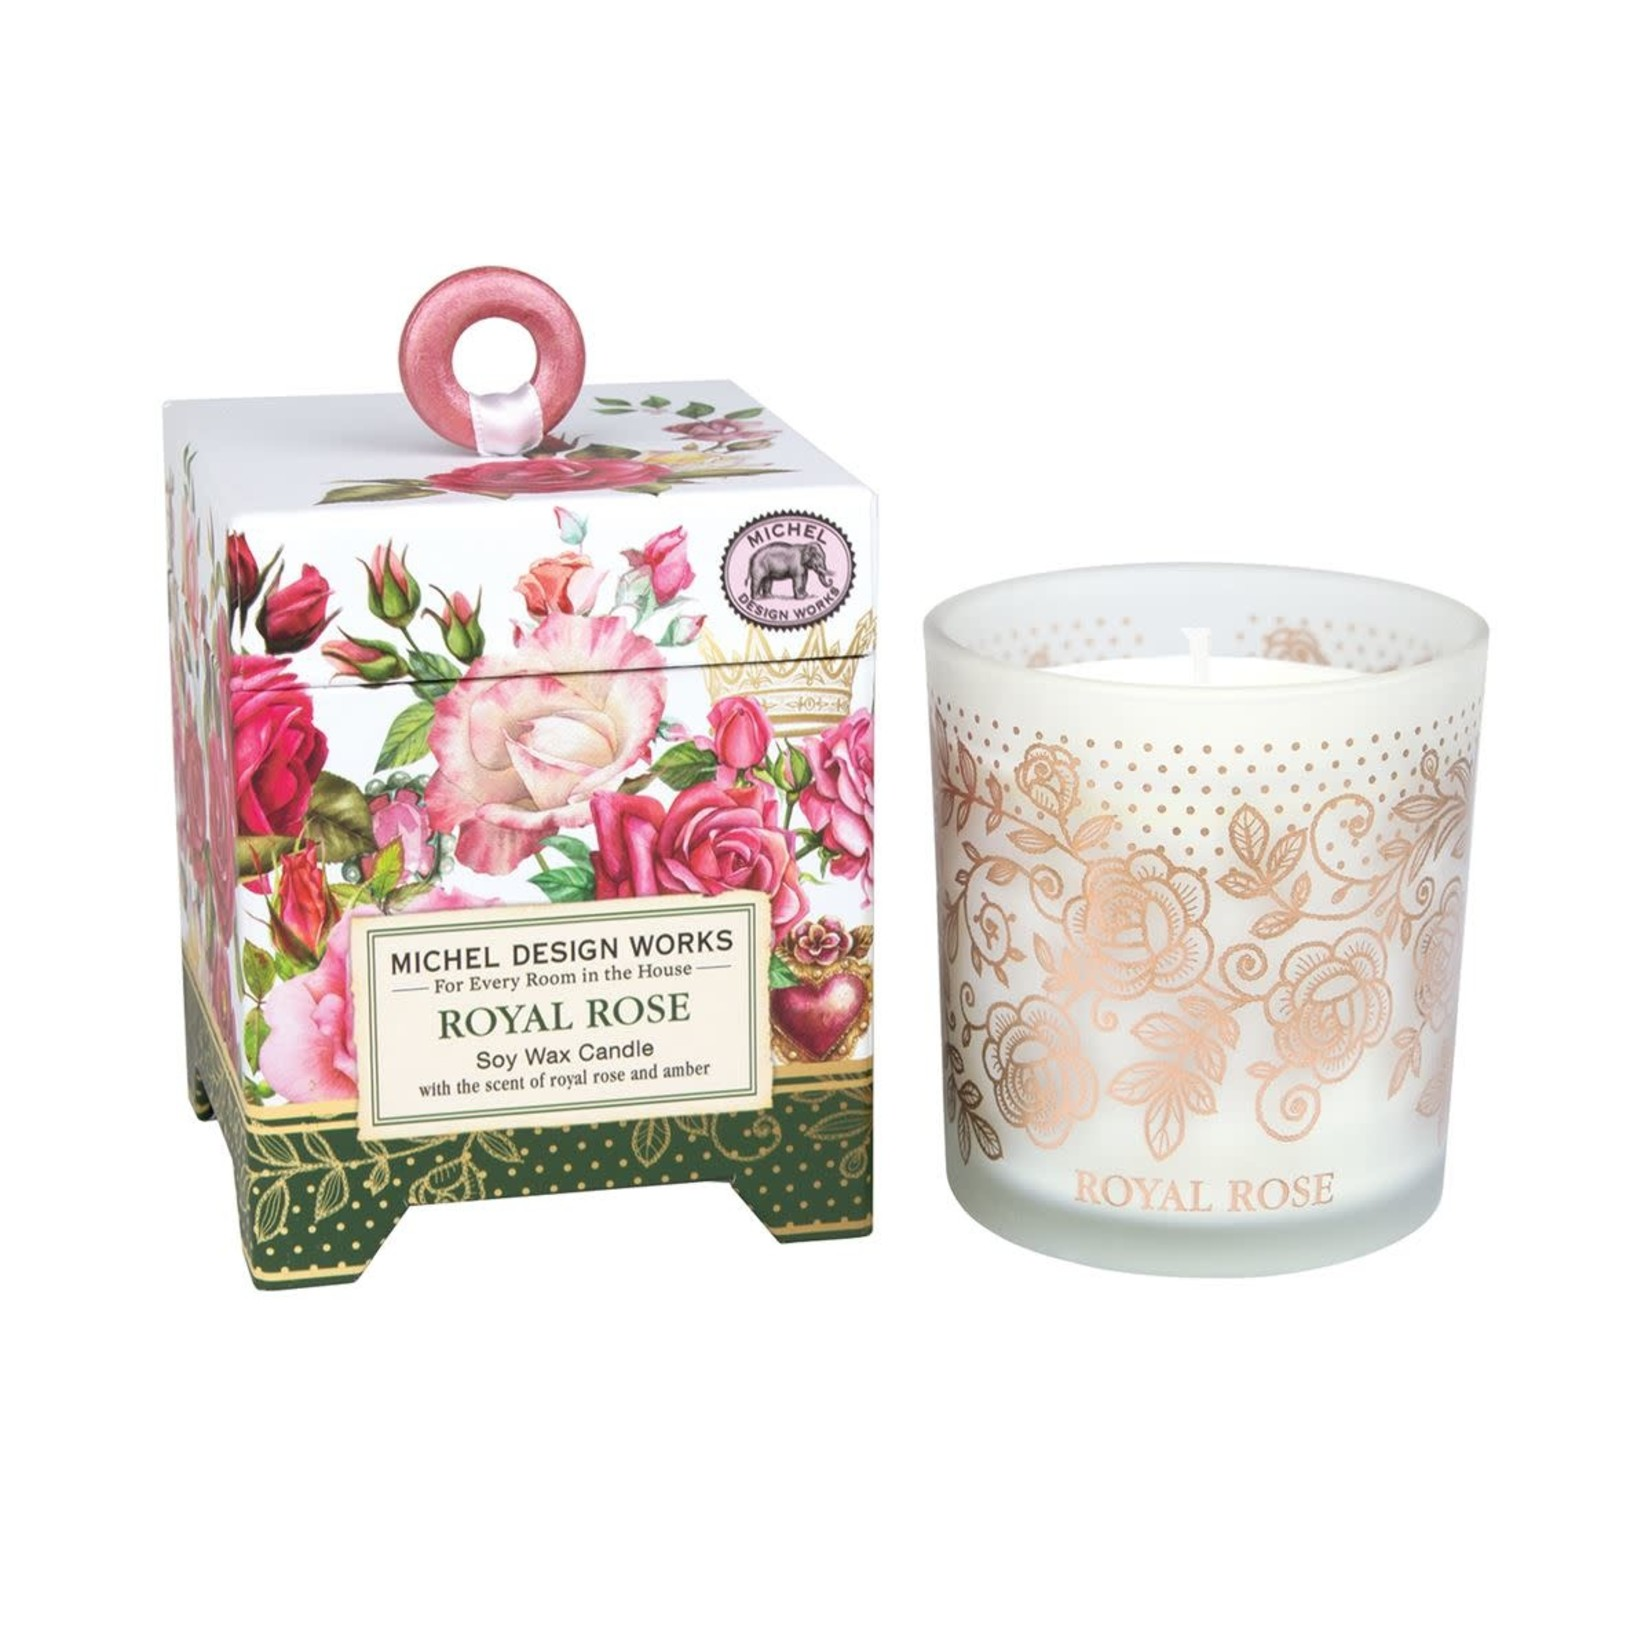 Michel Design Works Royal Rose 6.5 oz. Soy Wax Candle